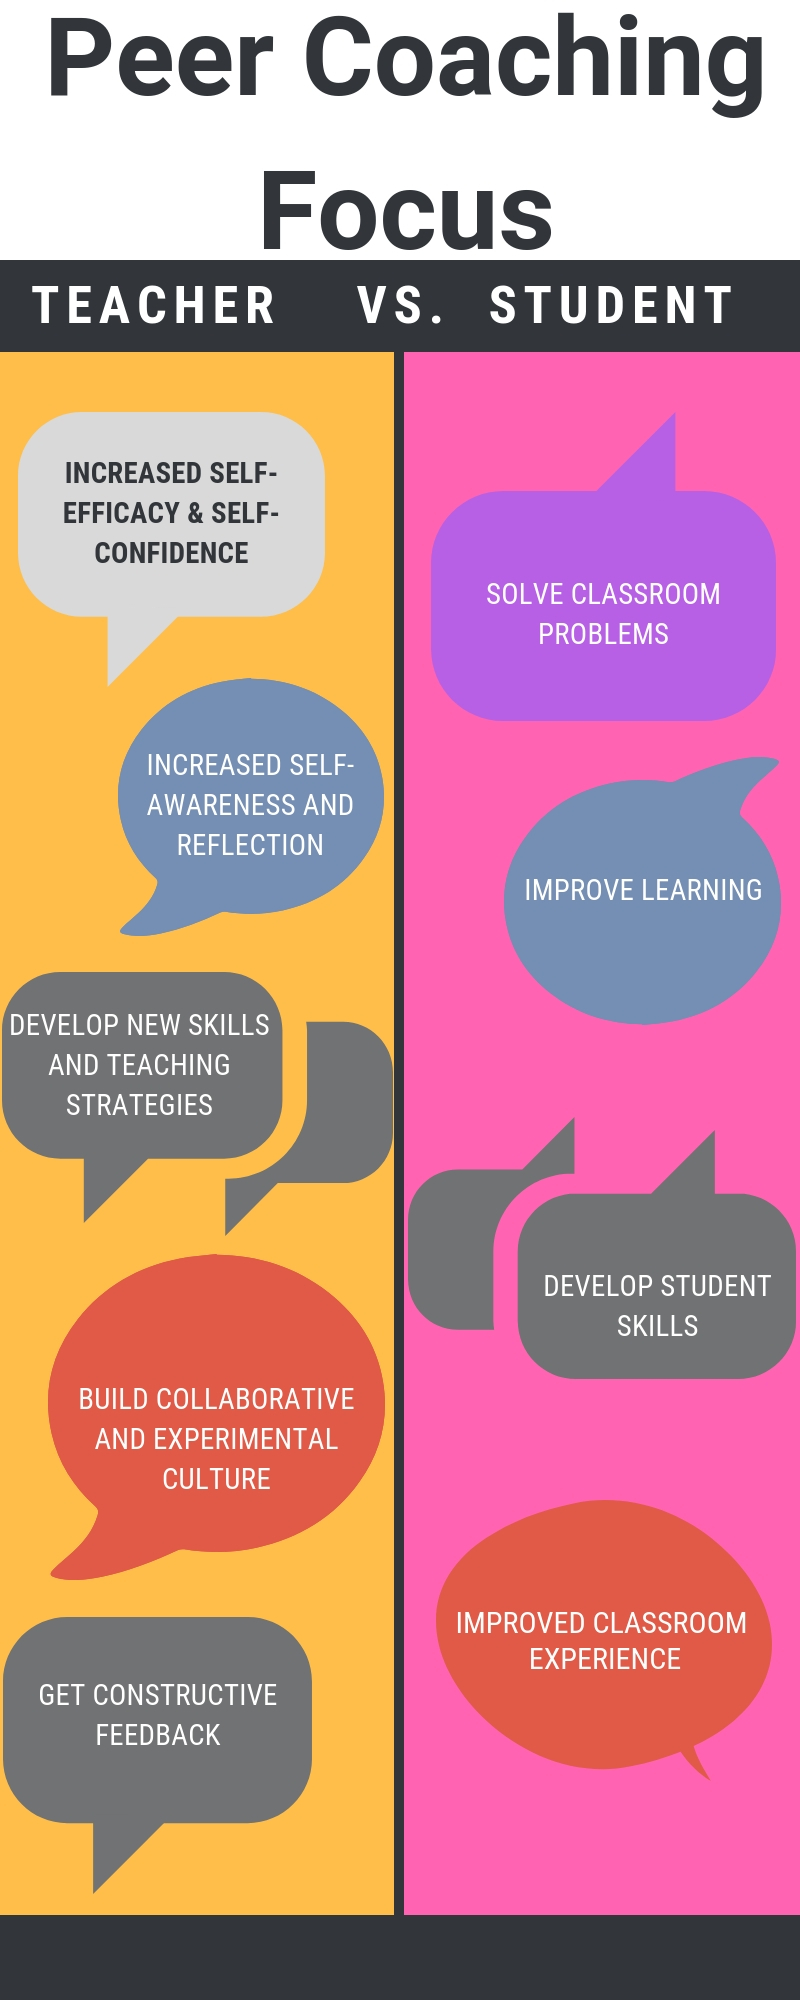 Infographic on benefits of teacher vs. student outcome focused peer coaching.